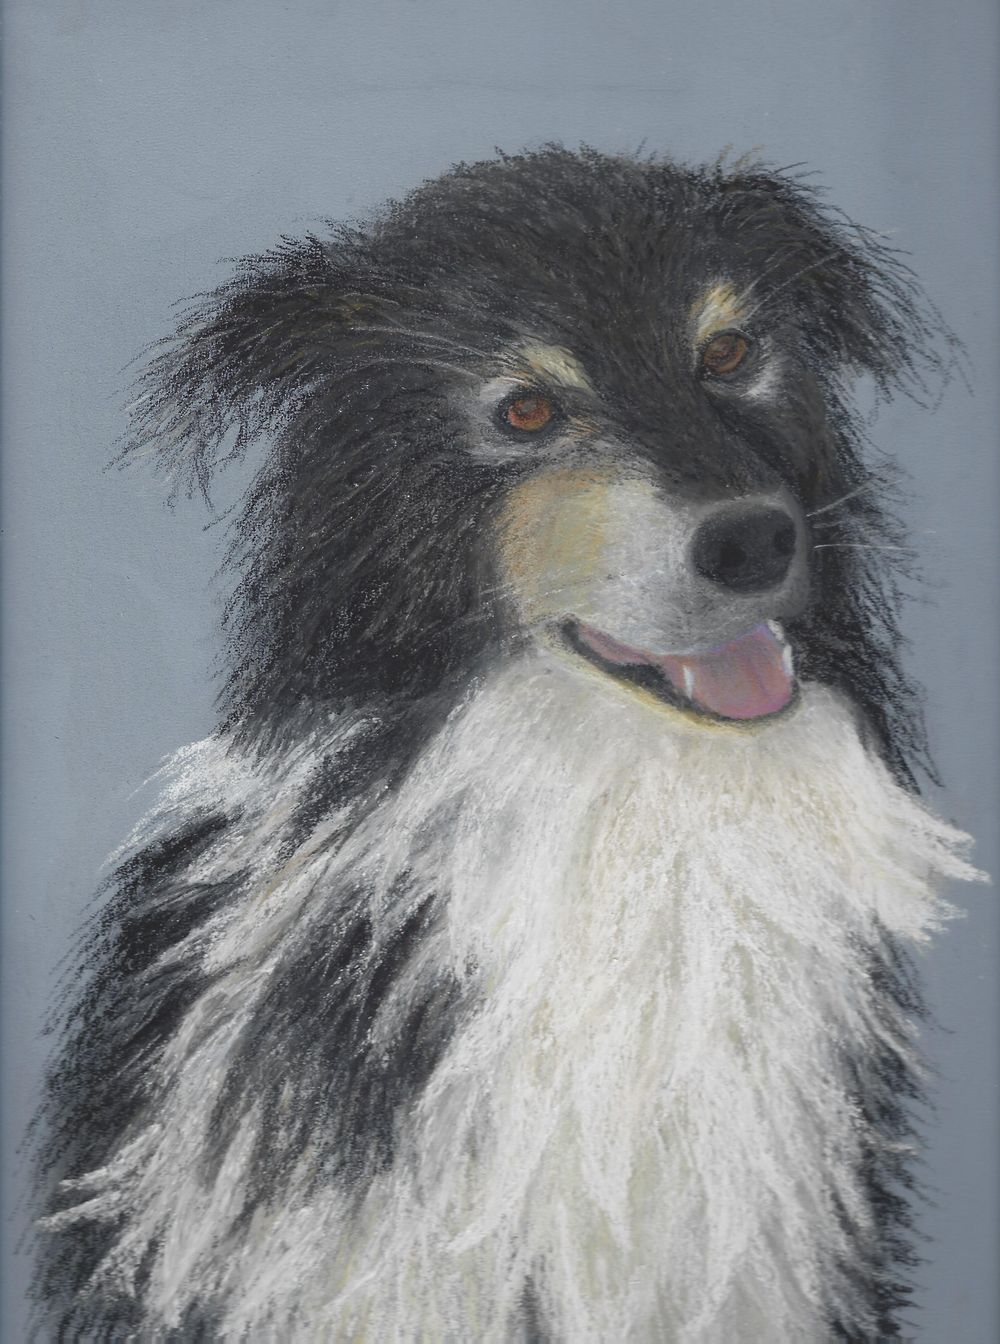 Border Collie - image 1 - student project